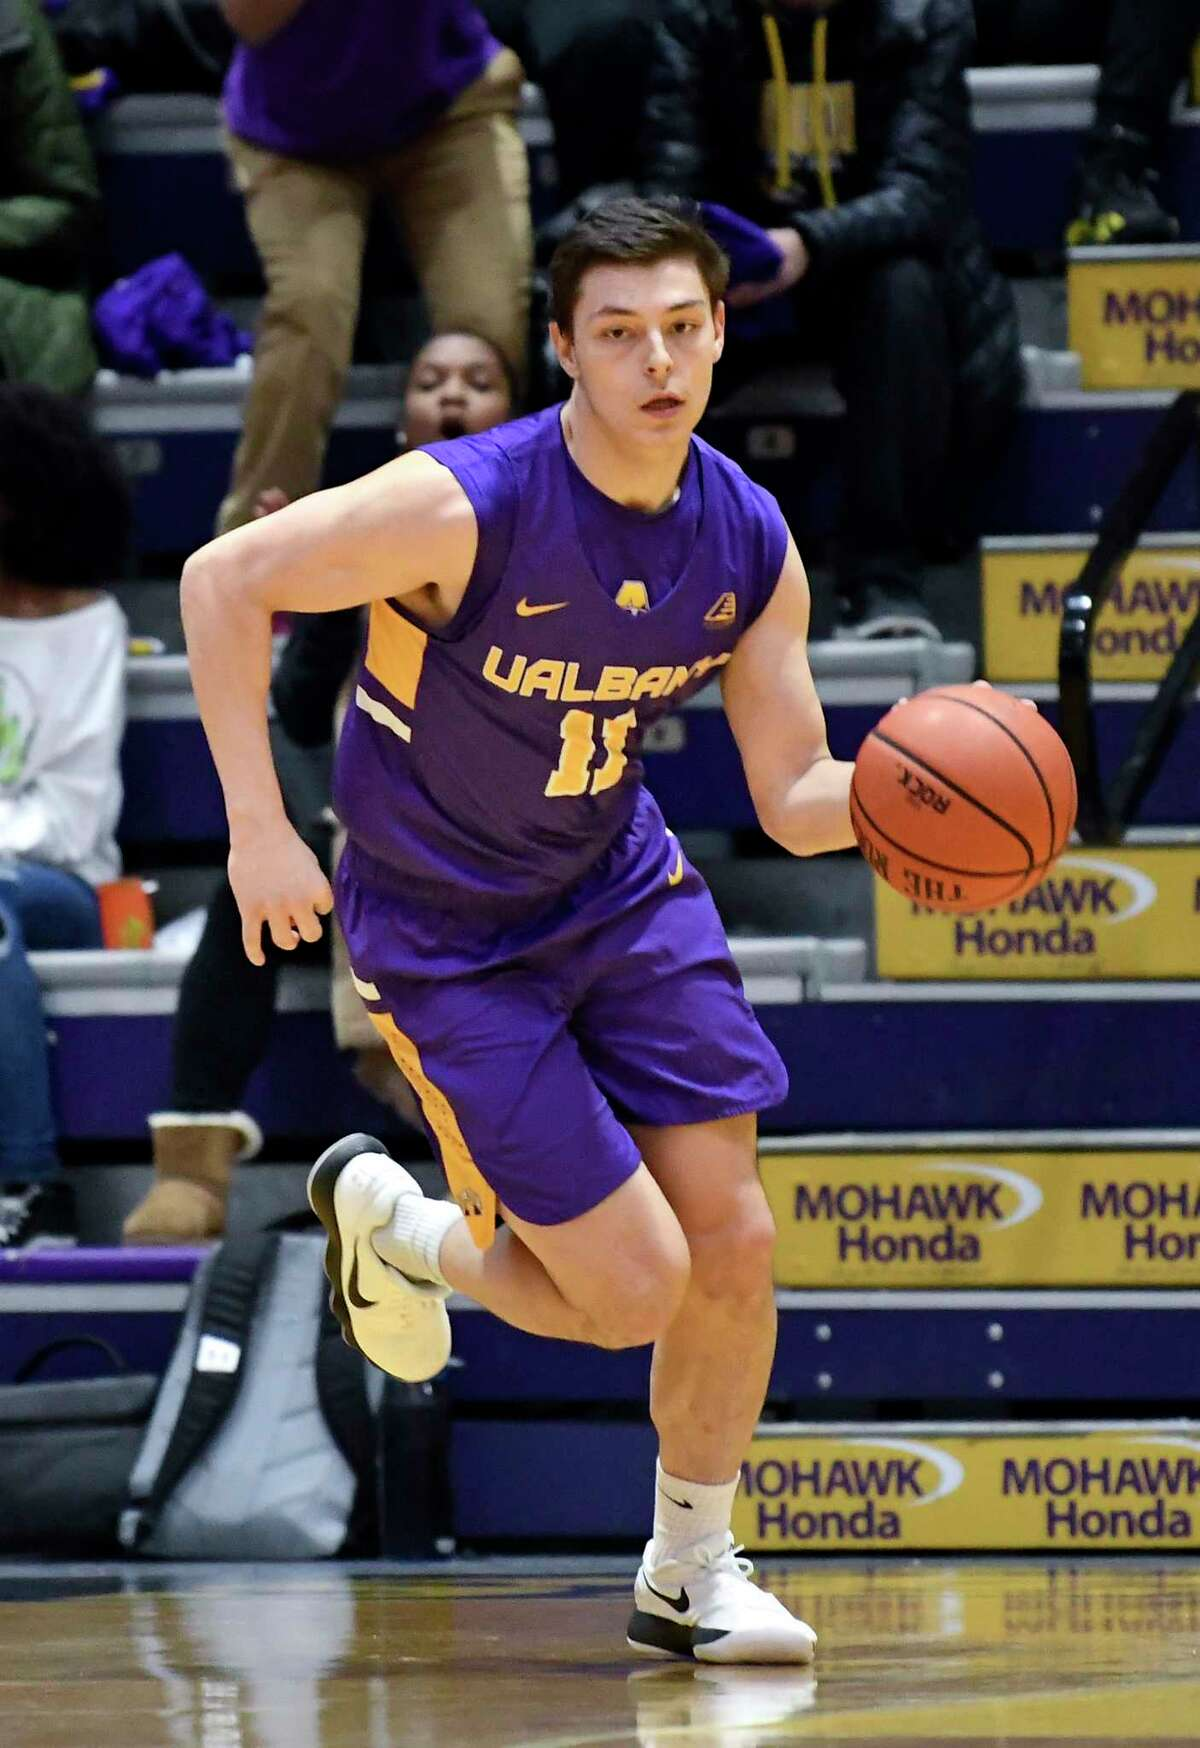 University at Albany guard Cameron Healy (11) moves the ball against Binghamton during the first half of an NCAA college basketball game Saturday, Feb. 2, 2019, in Albany, N.Y. (Hans Pennink / Special to the Times Union)